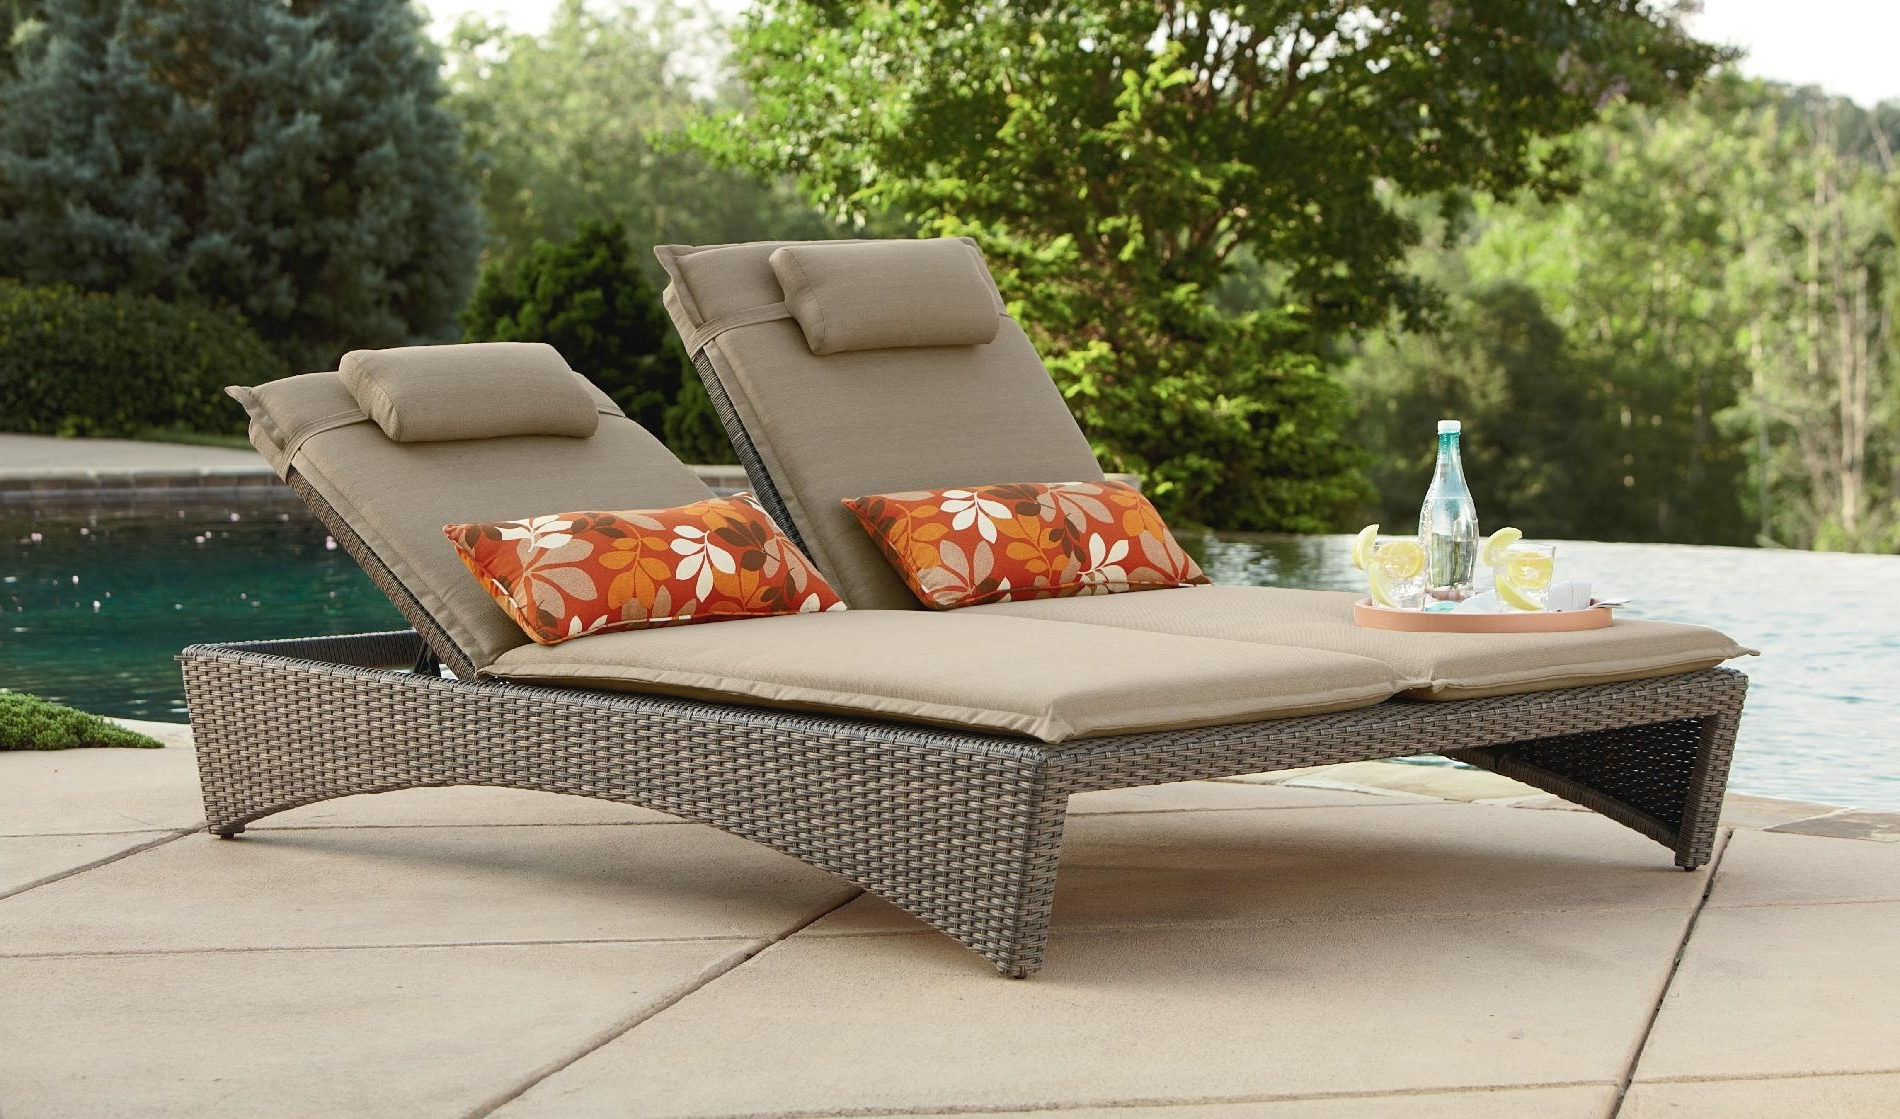 Chaise Lounge Chairs For Backyard Pertaining To Popular Picture 3 Of 35 – Walmart Patio Lounge Chairs Luxury Patio (View 7 of 15)